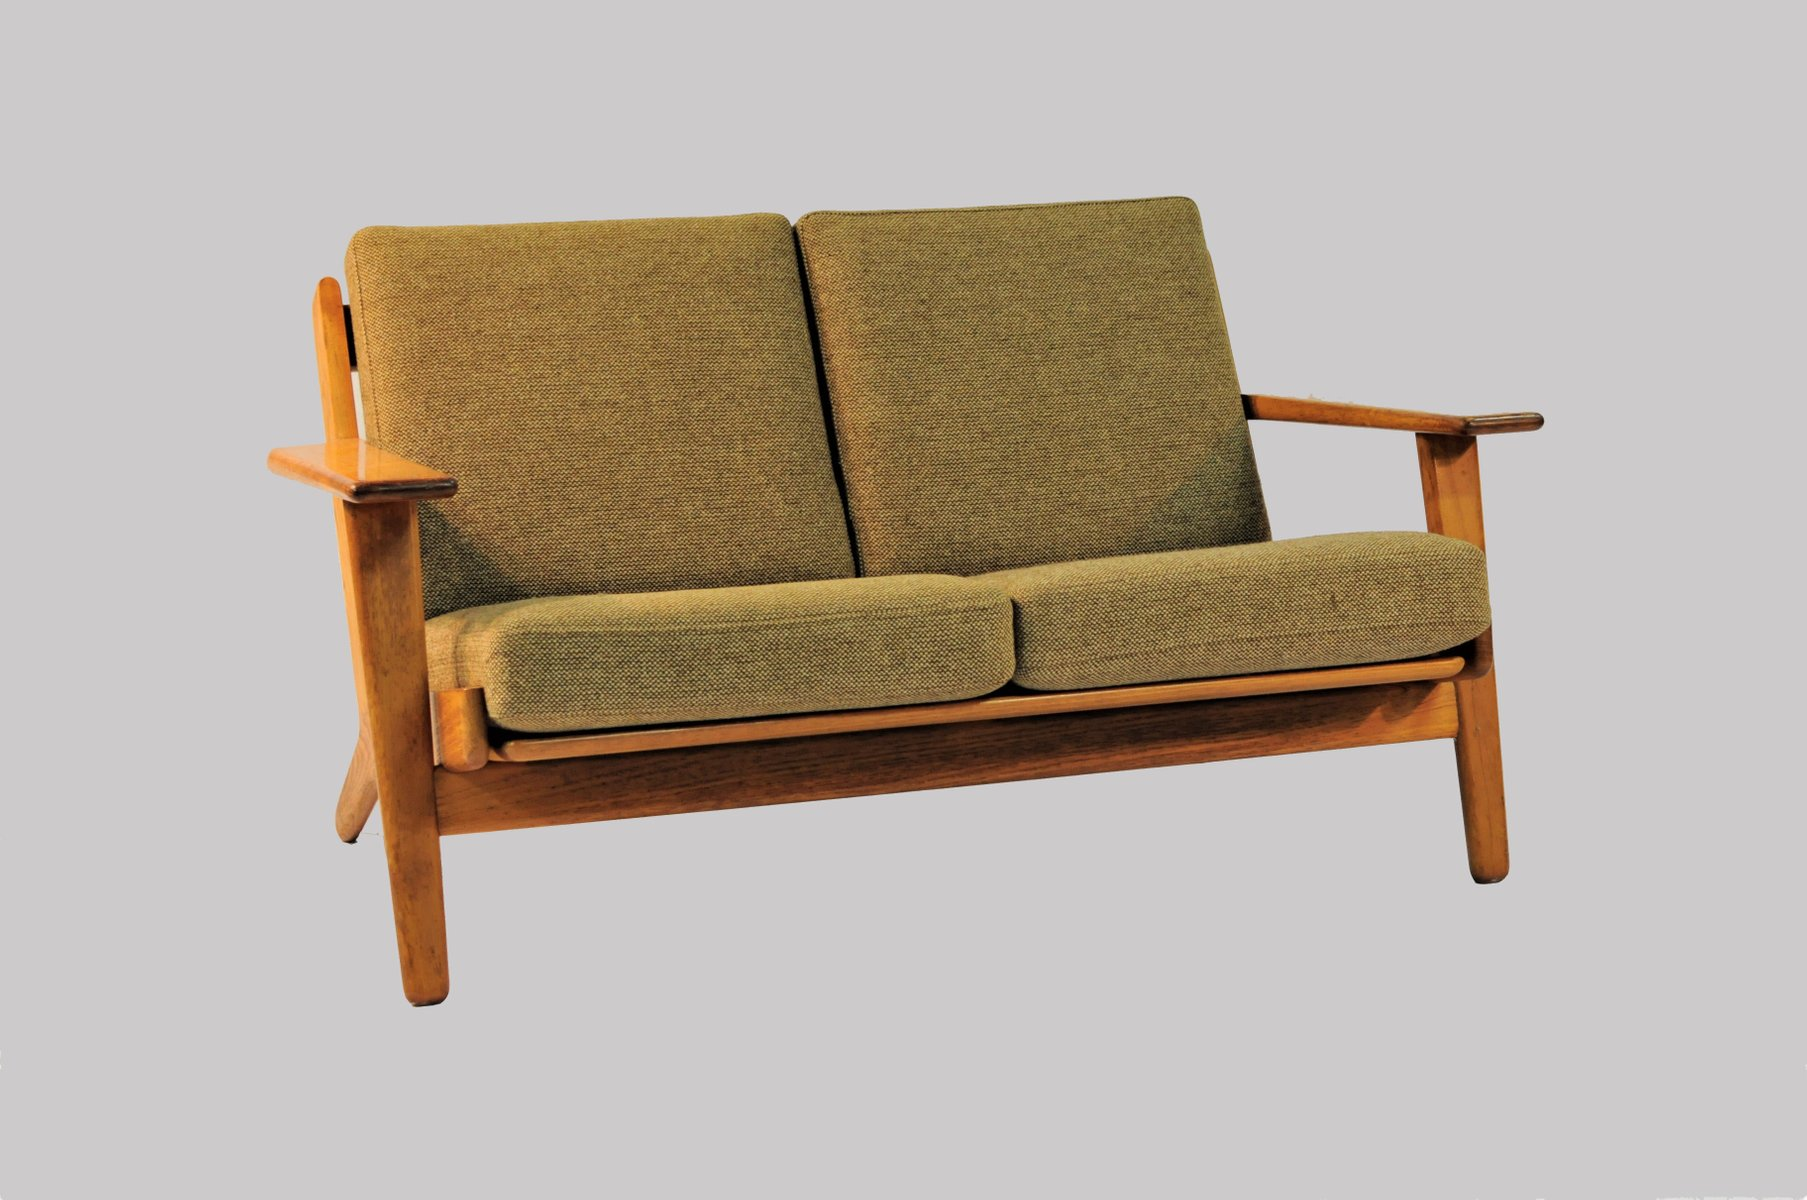 model ge 290 2 sofa by hans j wegner for getama 1950s for sale at pamono. Black Bedroom Furniture Sets. Home Design Ideas